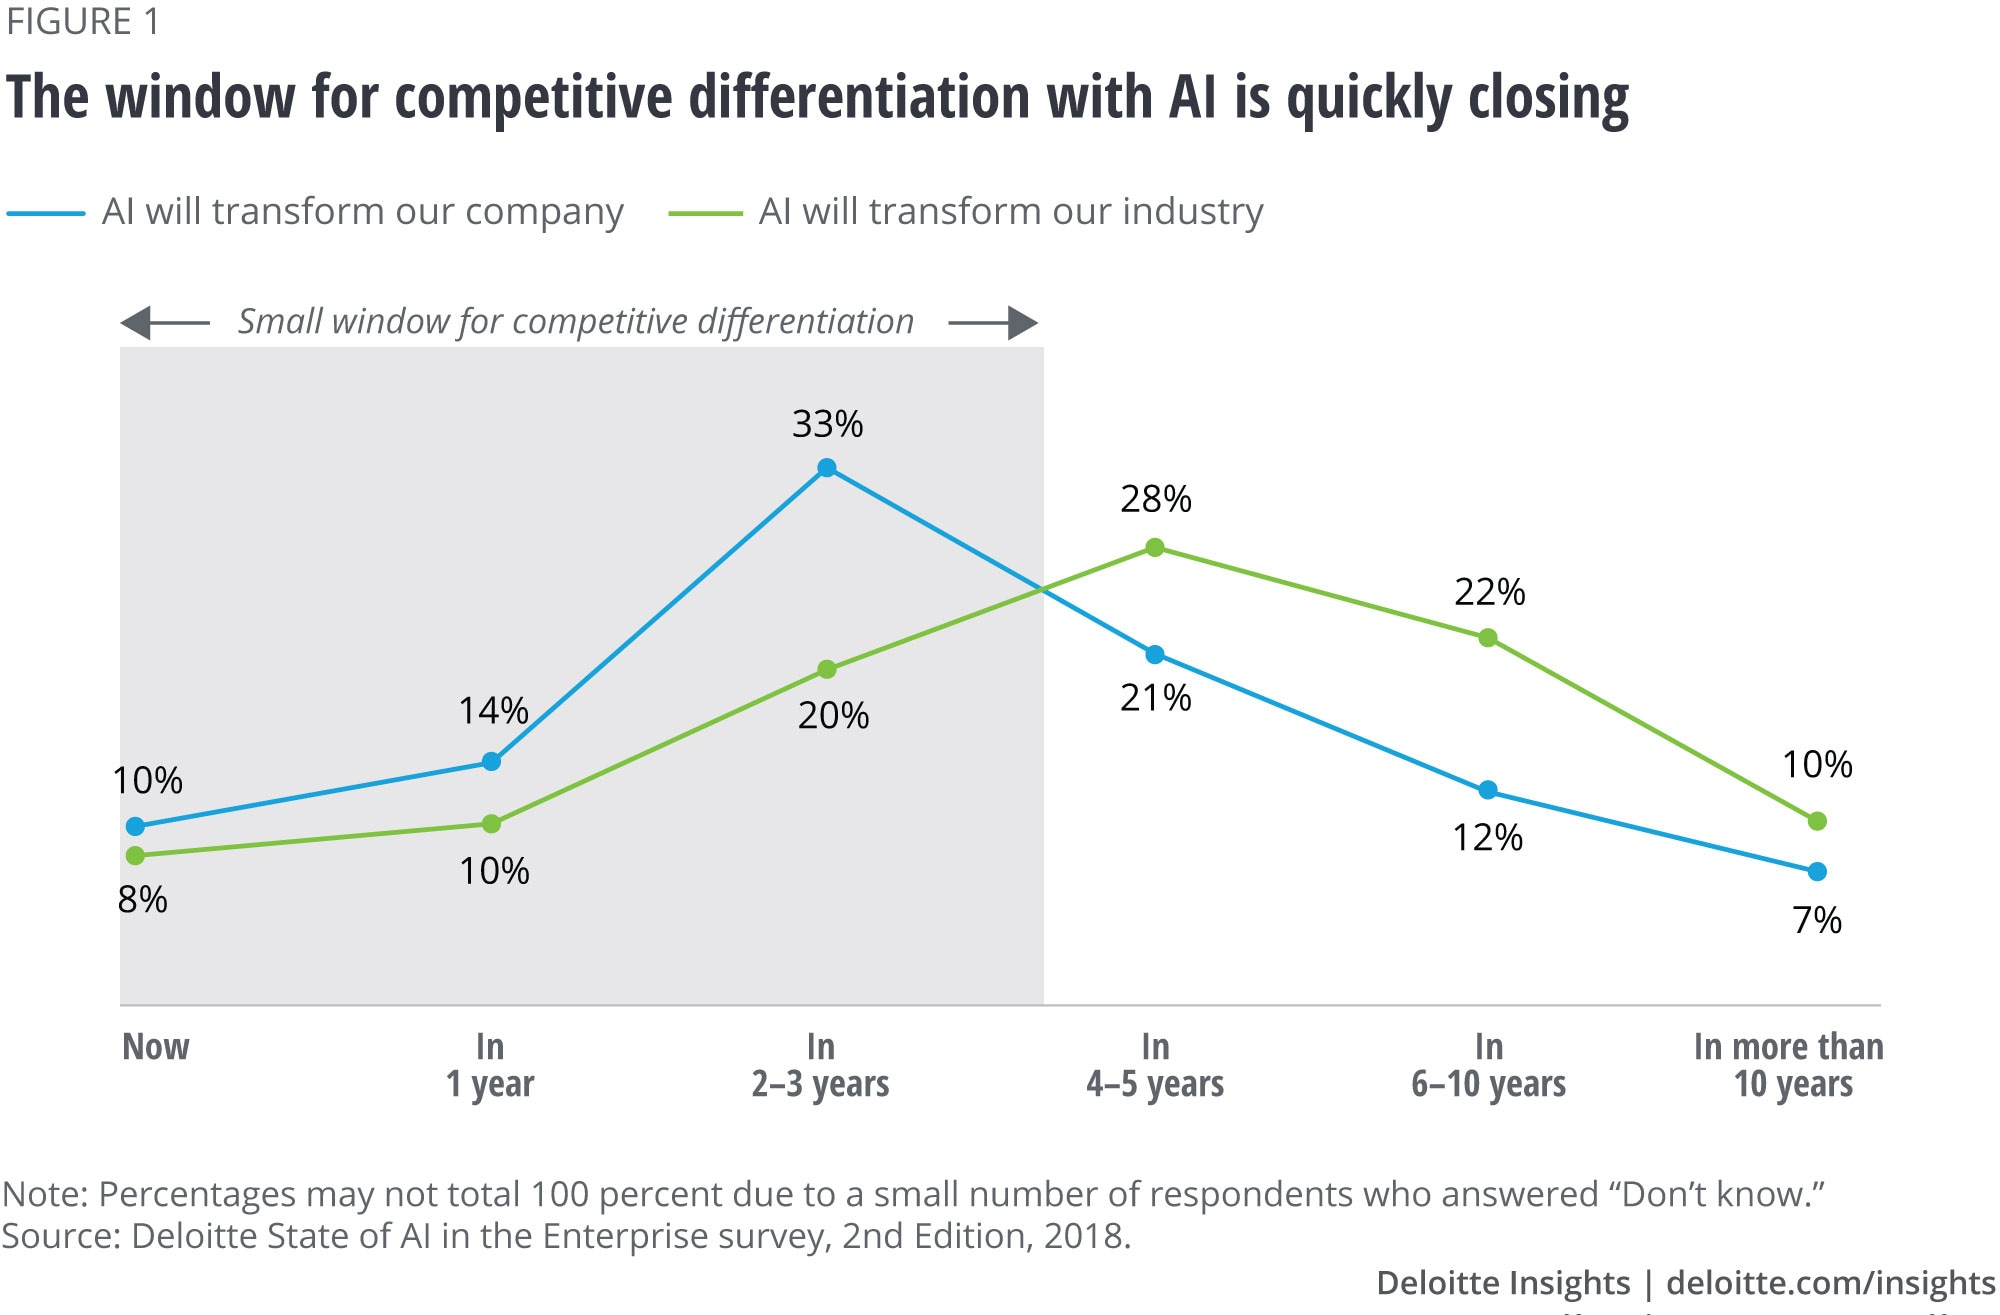 The window for competitive differentiation with AI is quickly closing